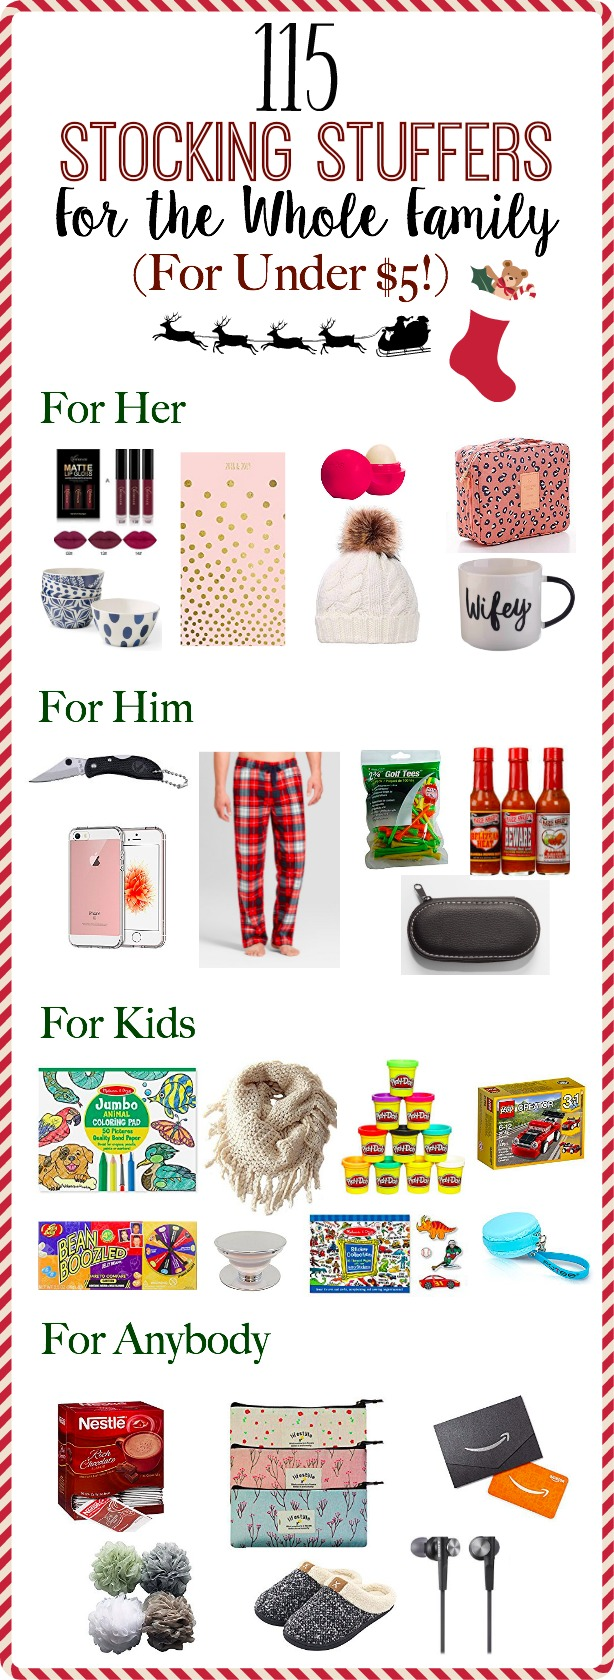 115 Stocking Stuffers For the Whole Family (For Under $5!) | Cheap stocking stuffer ideas for men, women, kids, and anybody else | www.mamabearbliss.com